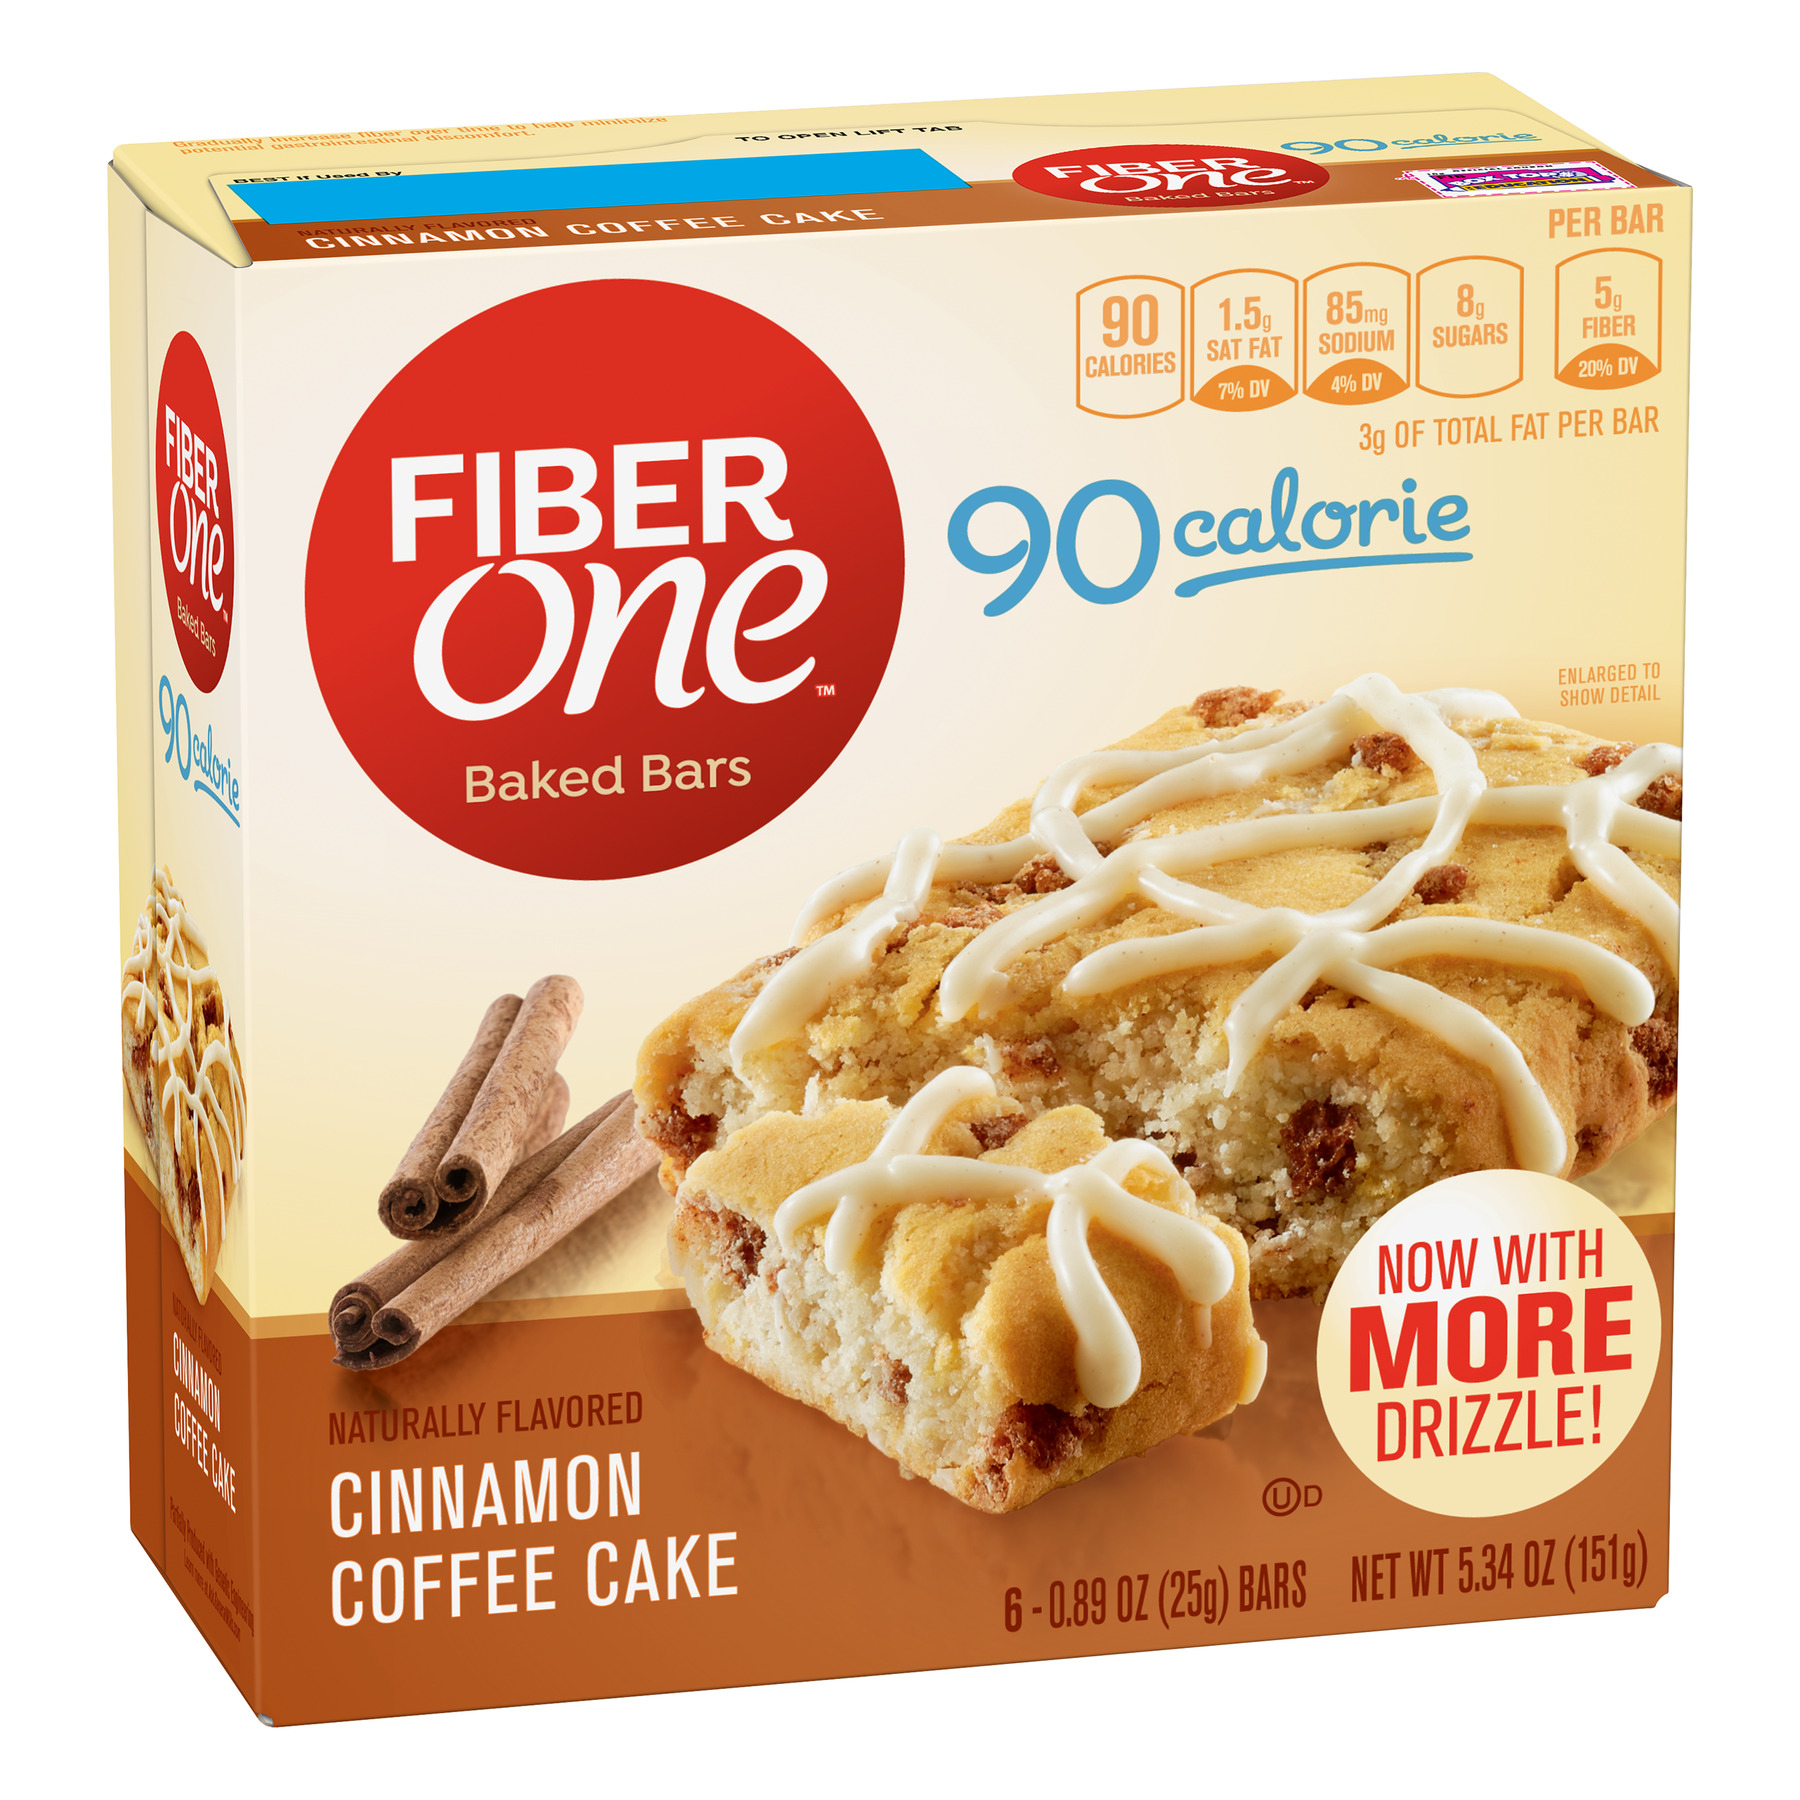 Fiber One 90 Calorie Soft-Baked Bar, Cinnamon Coffee Cake, 6 Fiber Bars, 5.34 oz